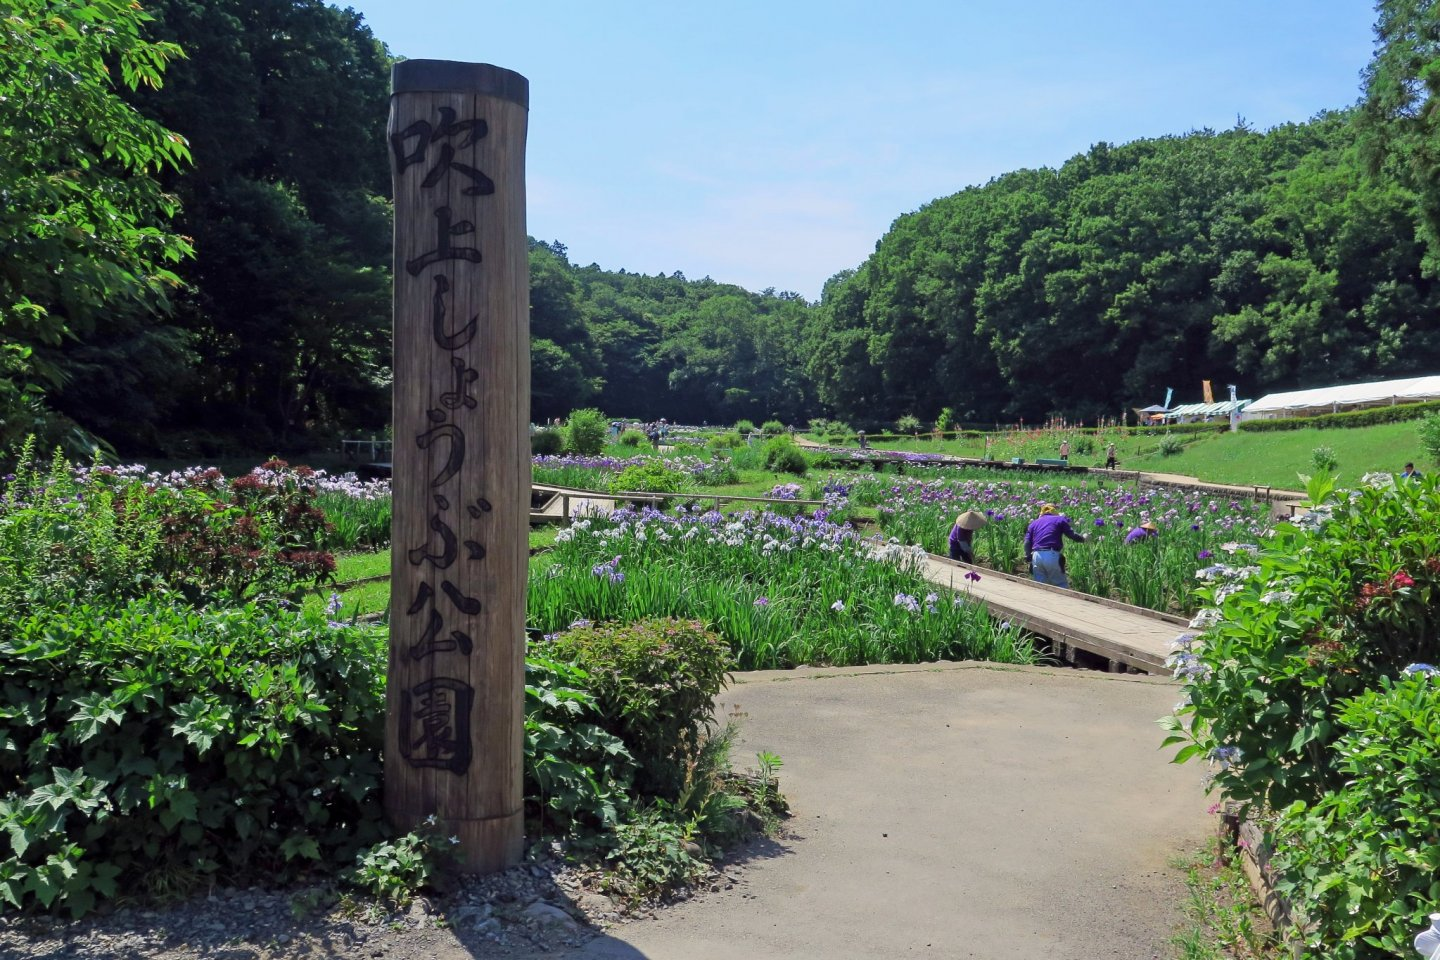 The entrance to the iris park